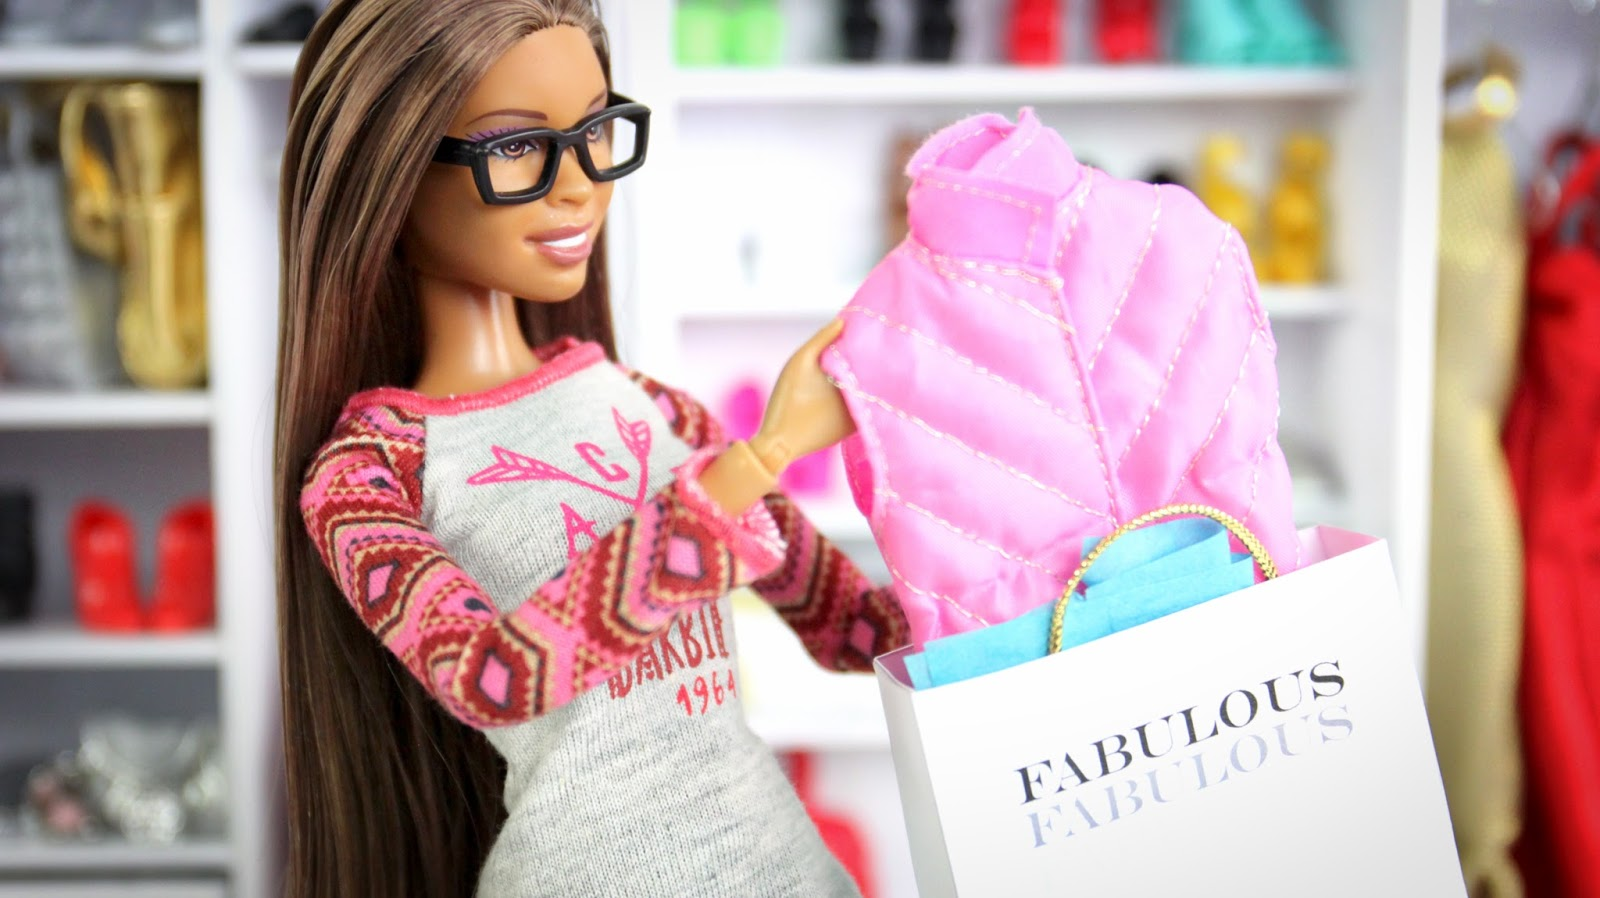 Barbie clothes online shopping